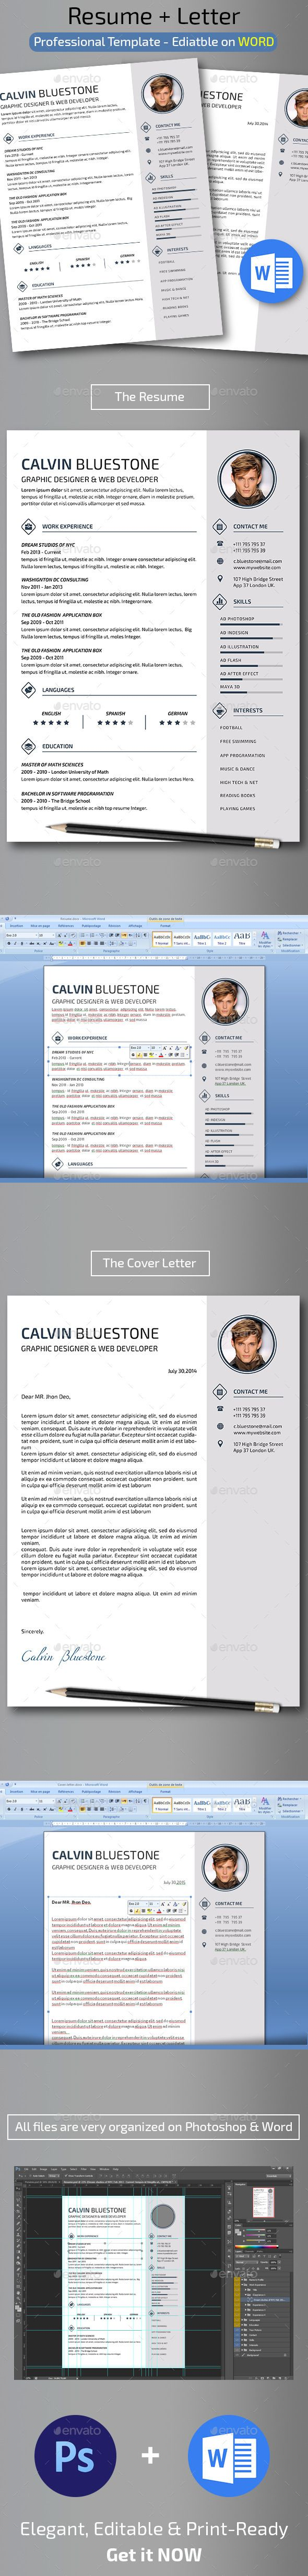 Cv 212 best Cv images on Pinterest